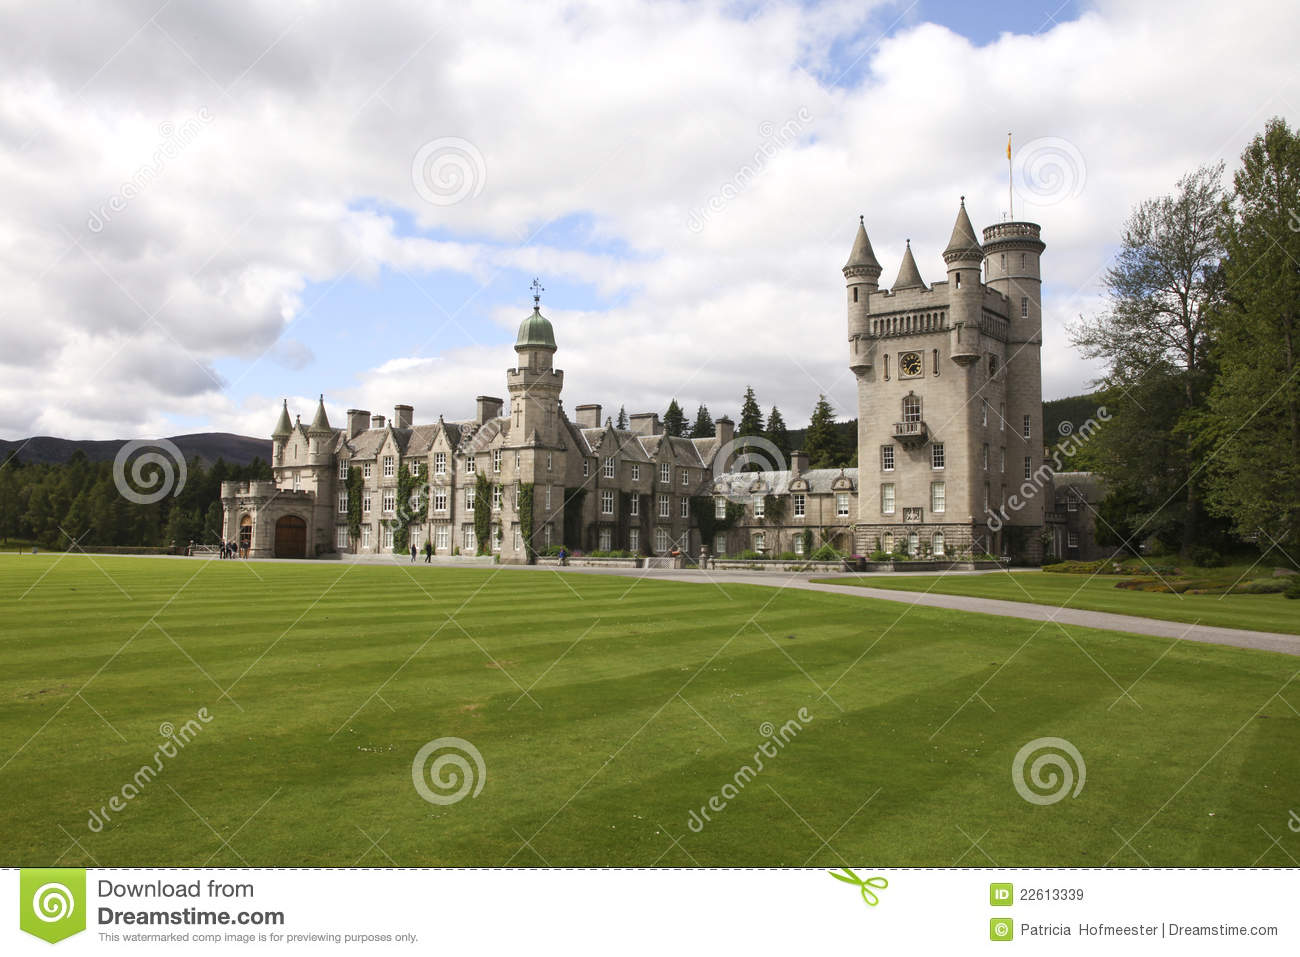 balmoral castle royalty free stock images   image 22613339